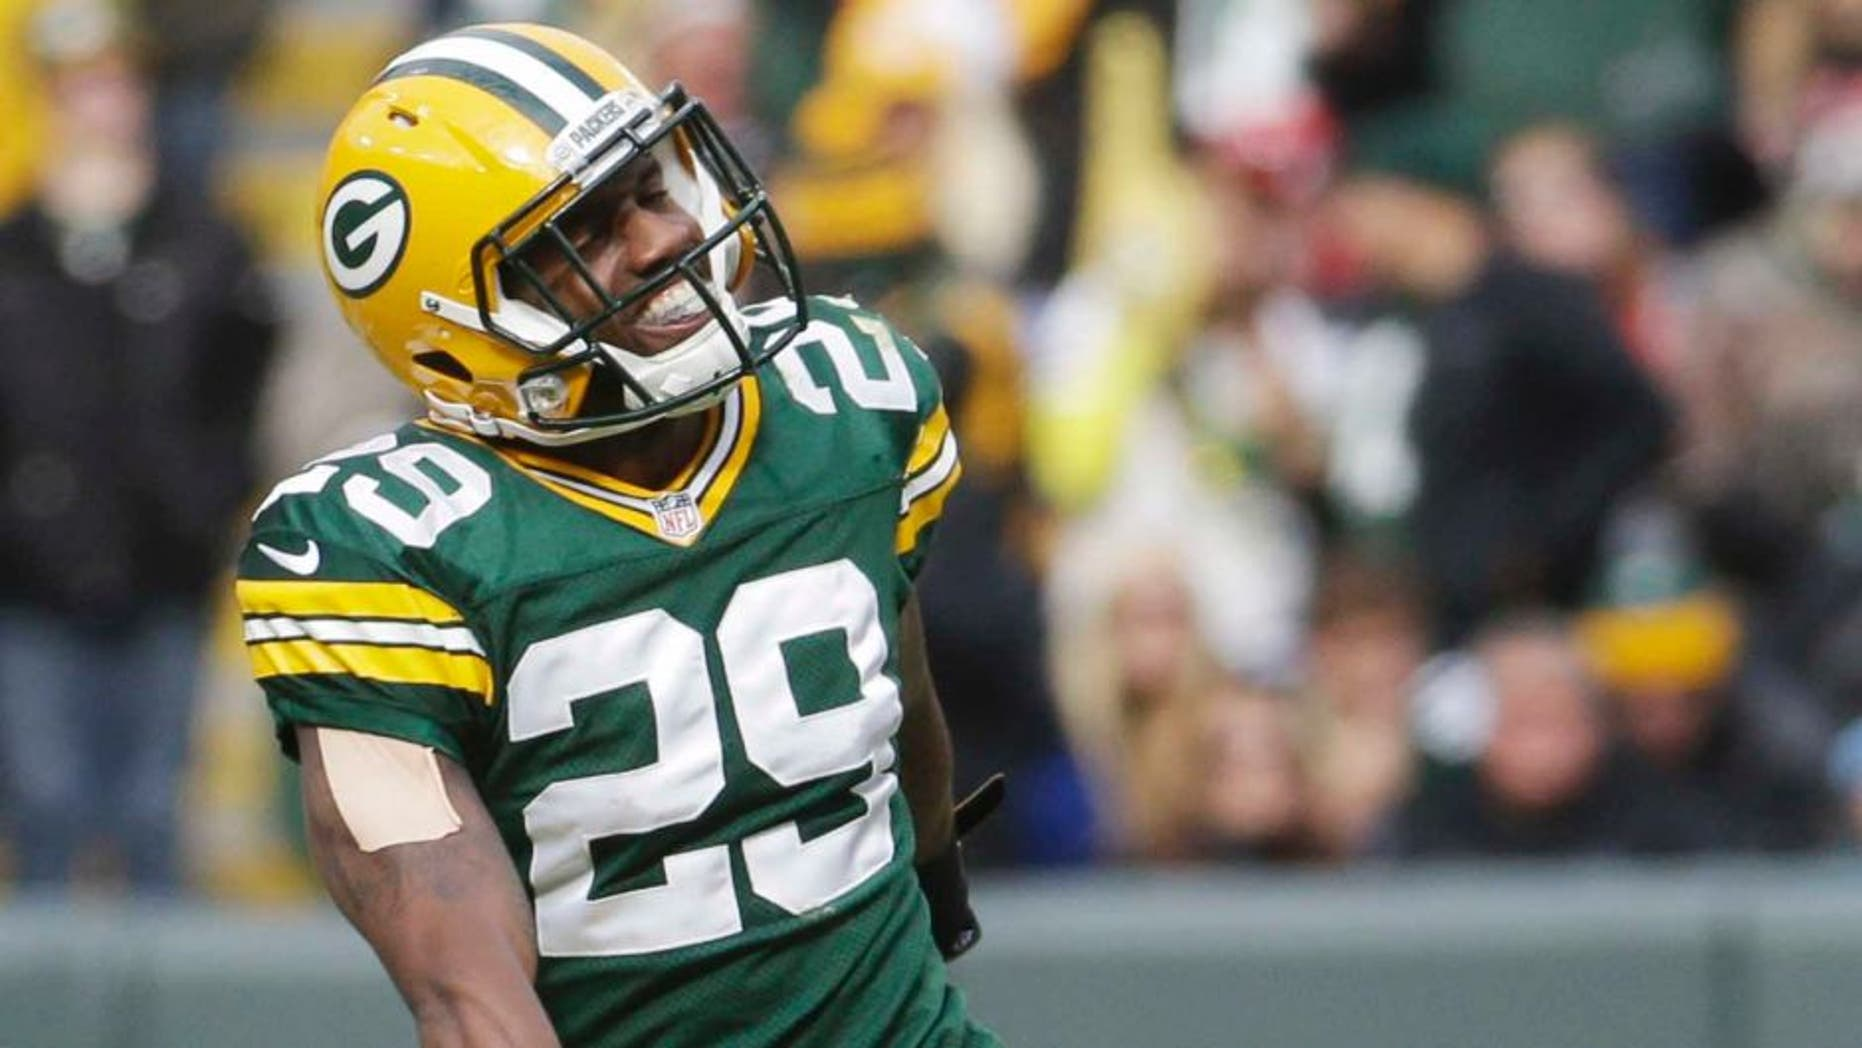 The Green Bay Packers' Casey Hayward celebrates after intercepting a pass during the second half against the Carolina Panthers.